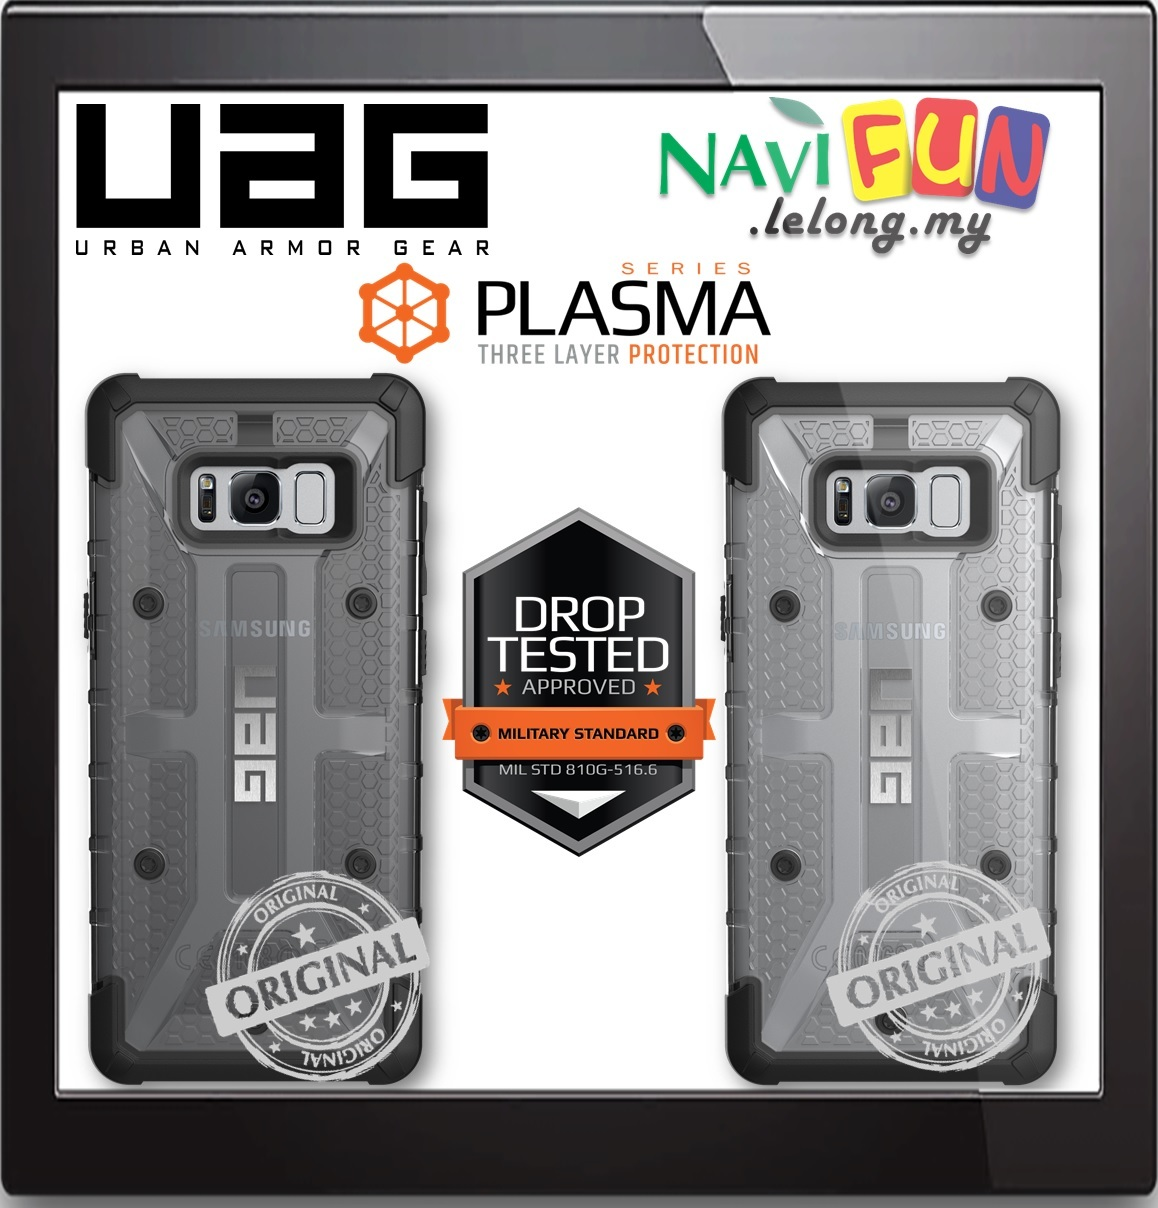 Galaxy s6 cases shop samsung cases online uag urban armor gear - Urban Armor Gear Uag Plasma Case Samsung S8 Plus